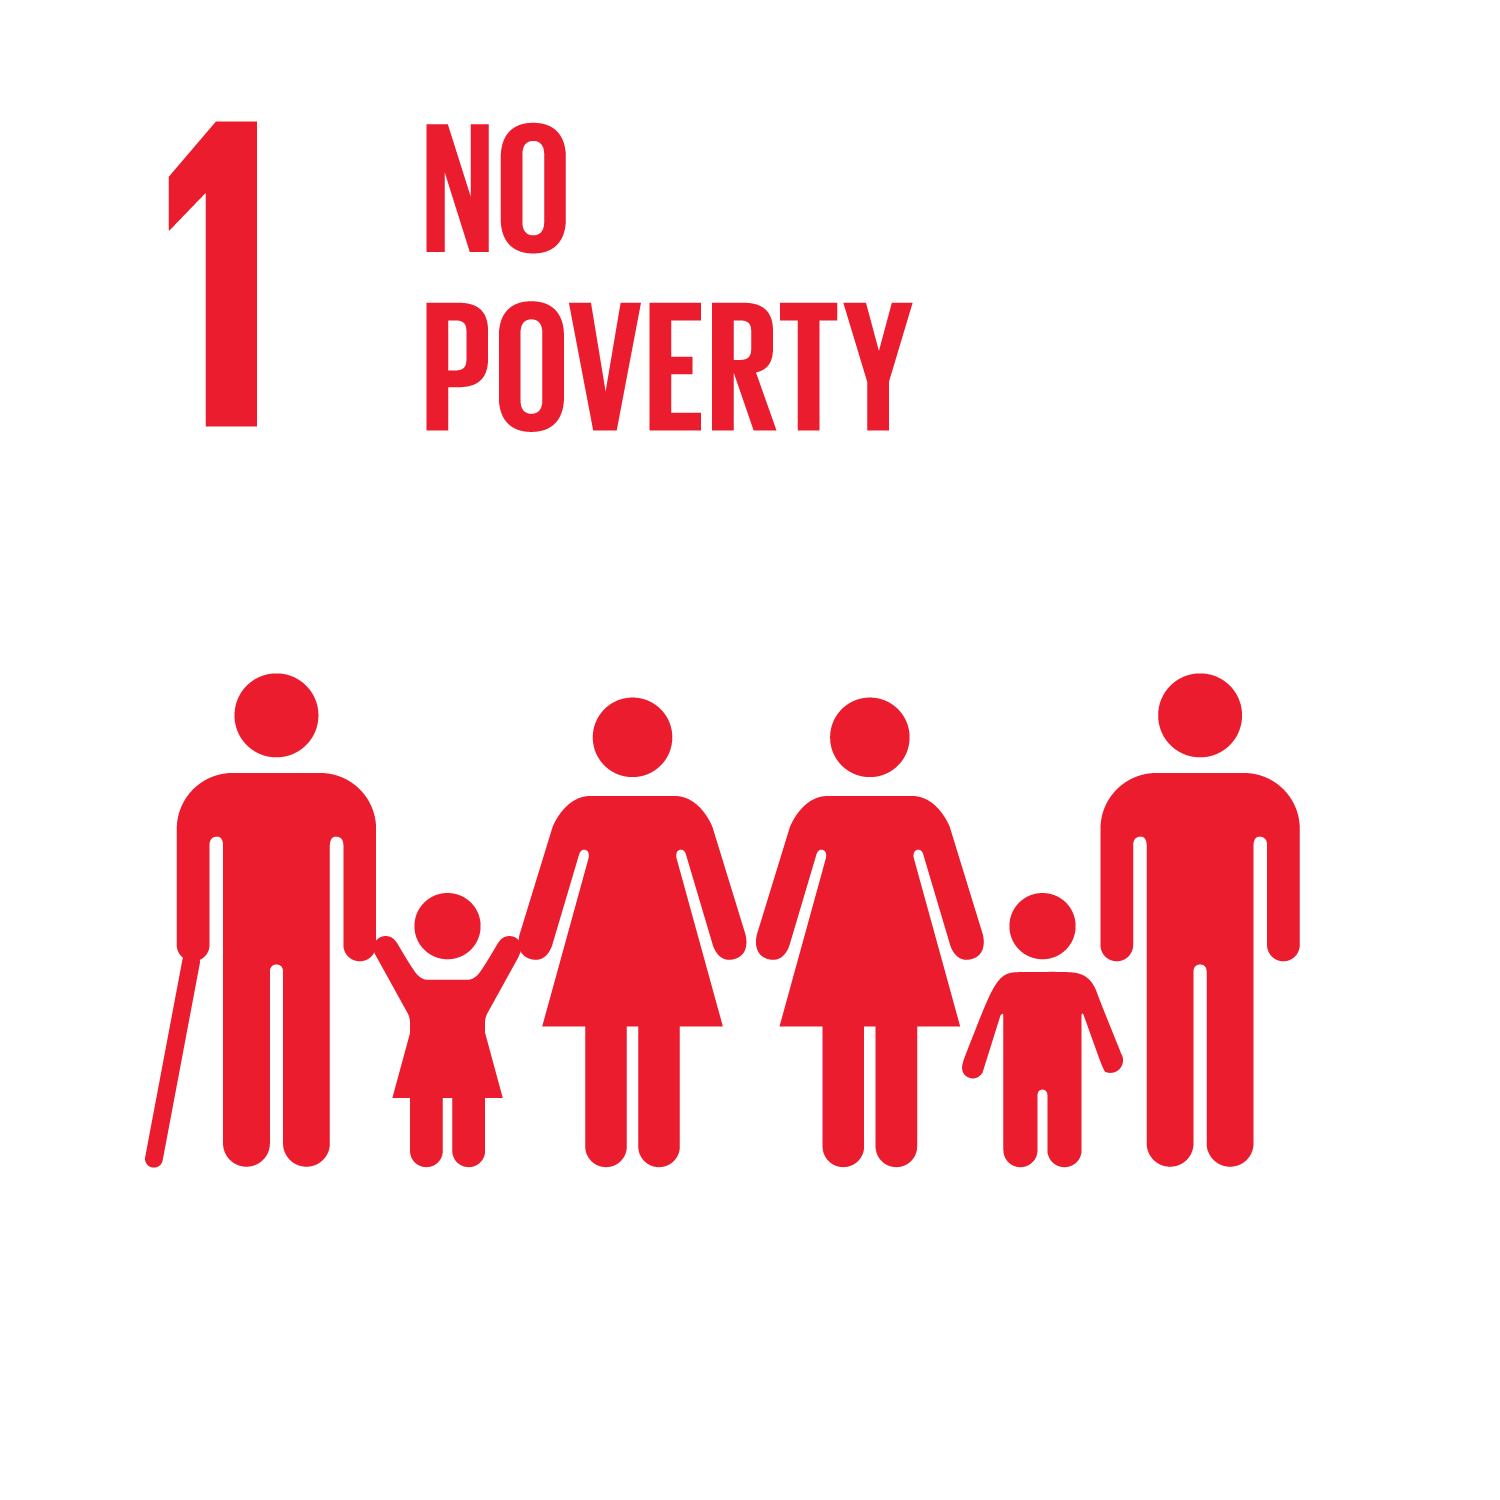 No poverty